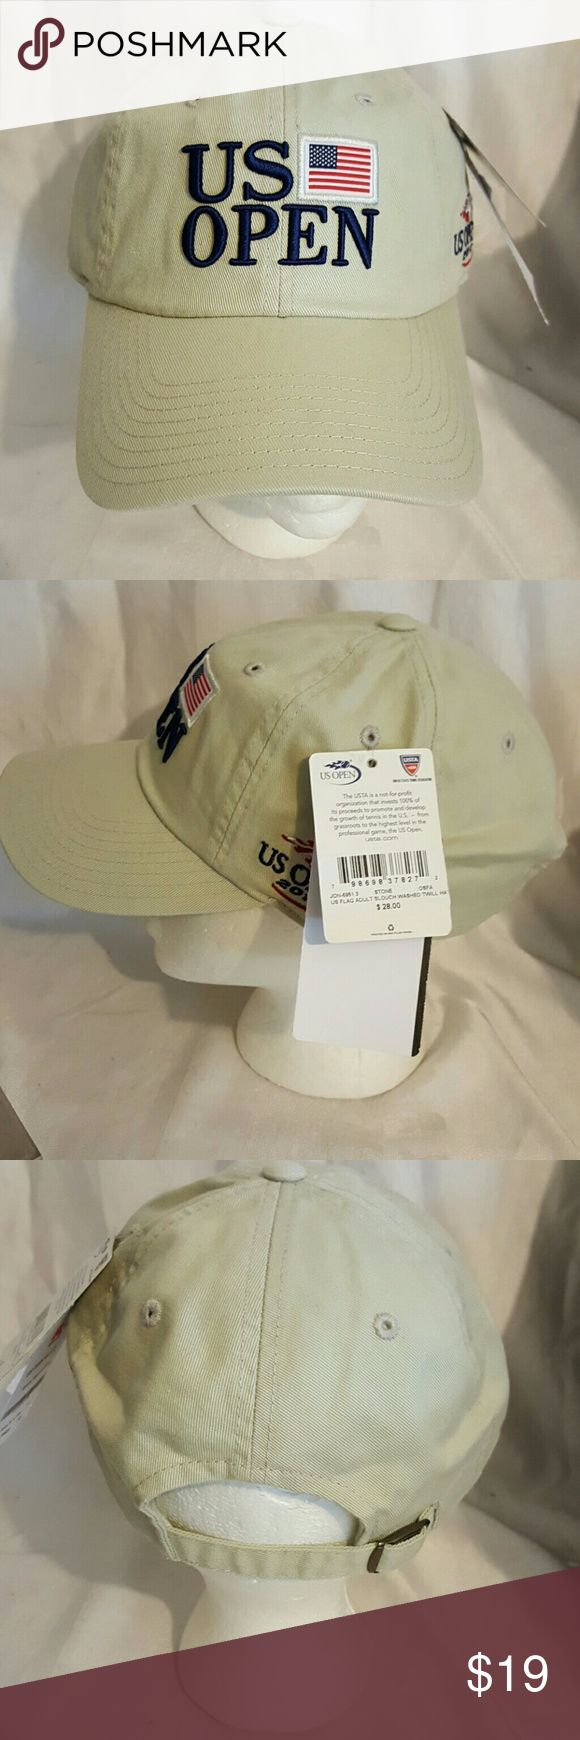 US Open 2014 Baseball cap Adjustable American Needle Accessories Hats